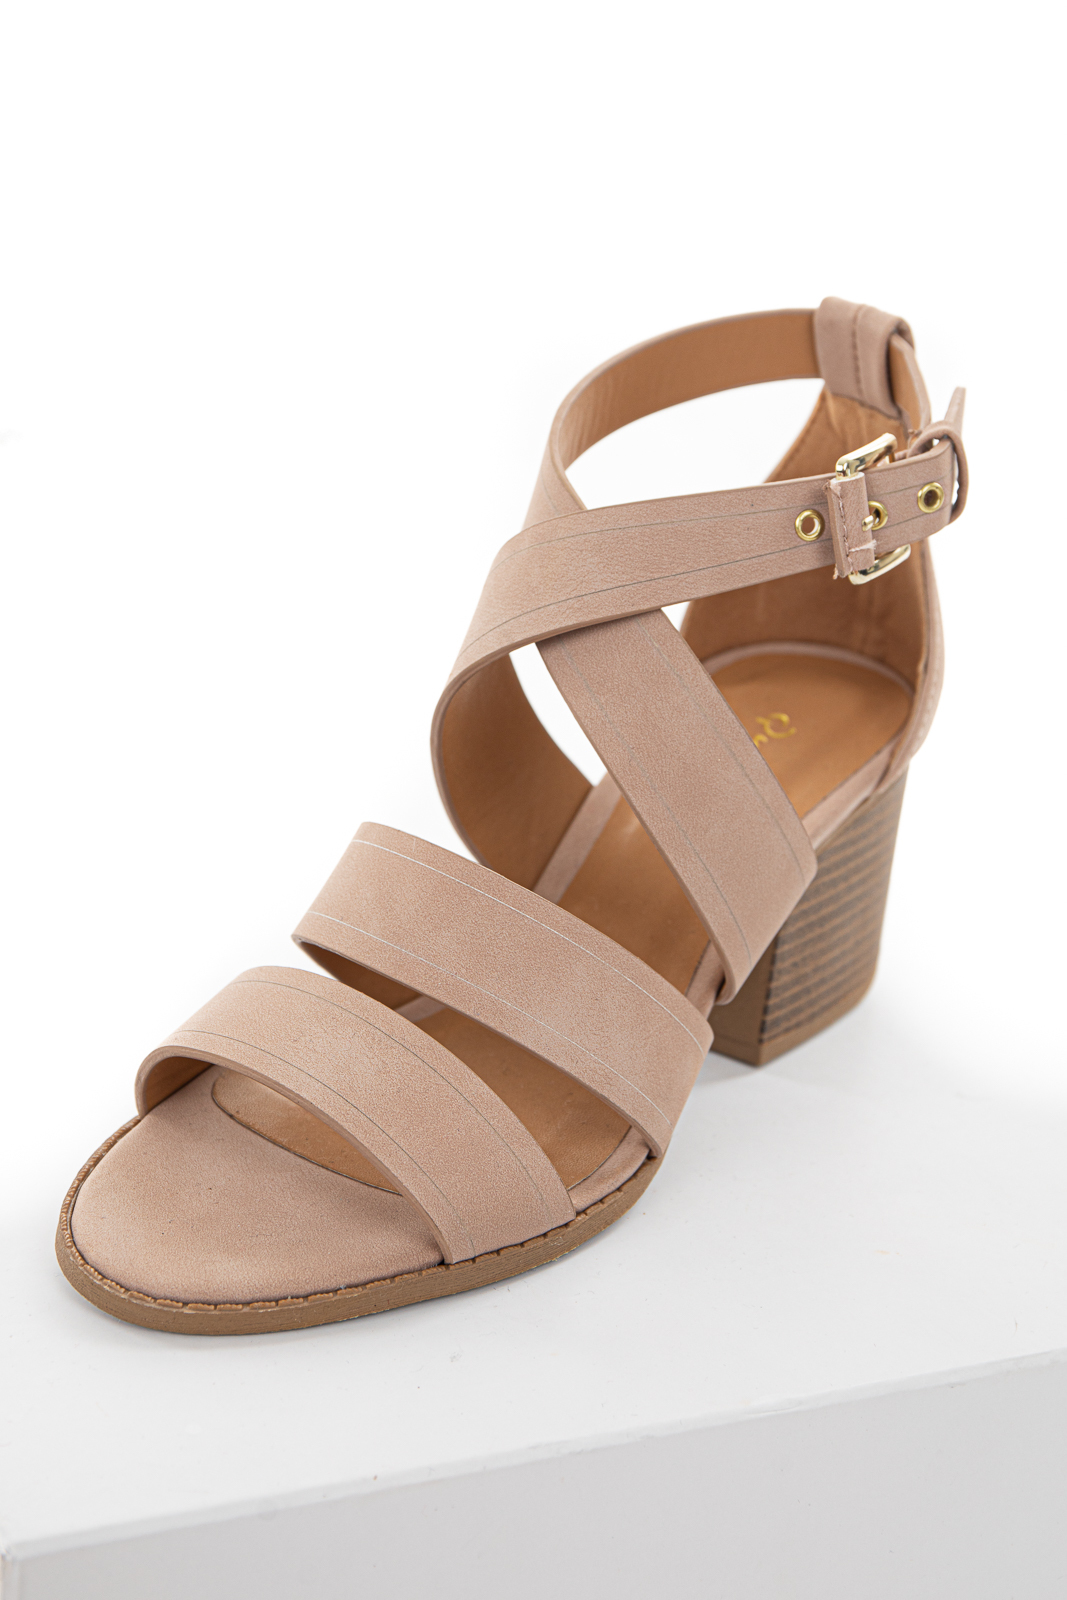 Light Rose Taupe Chunky Strapped Block Heels with Buckle